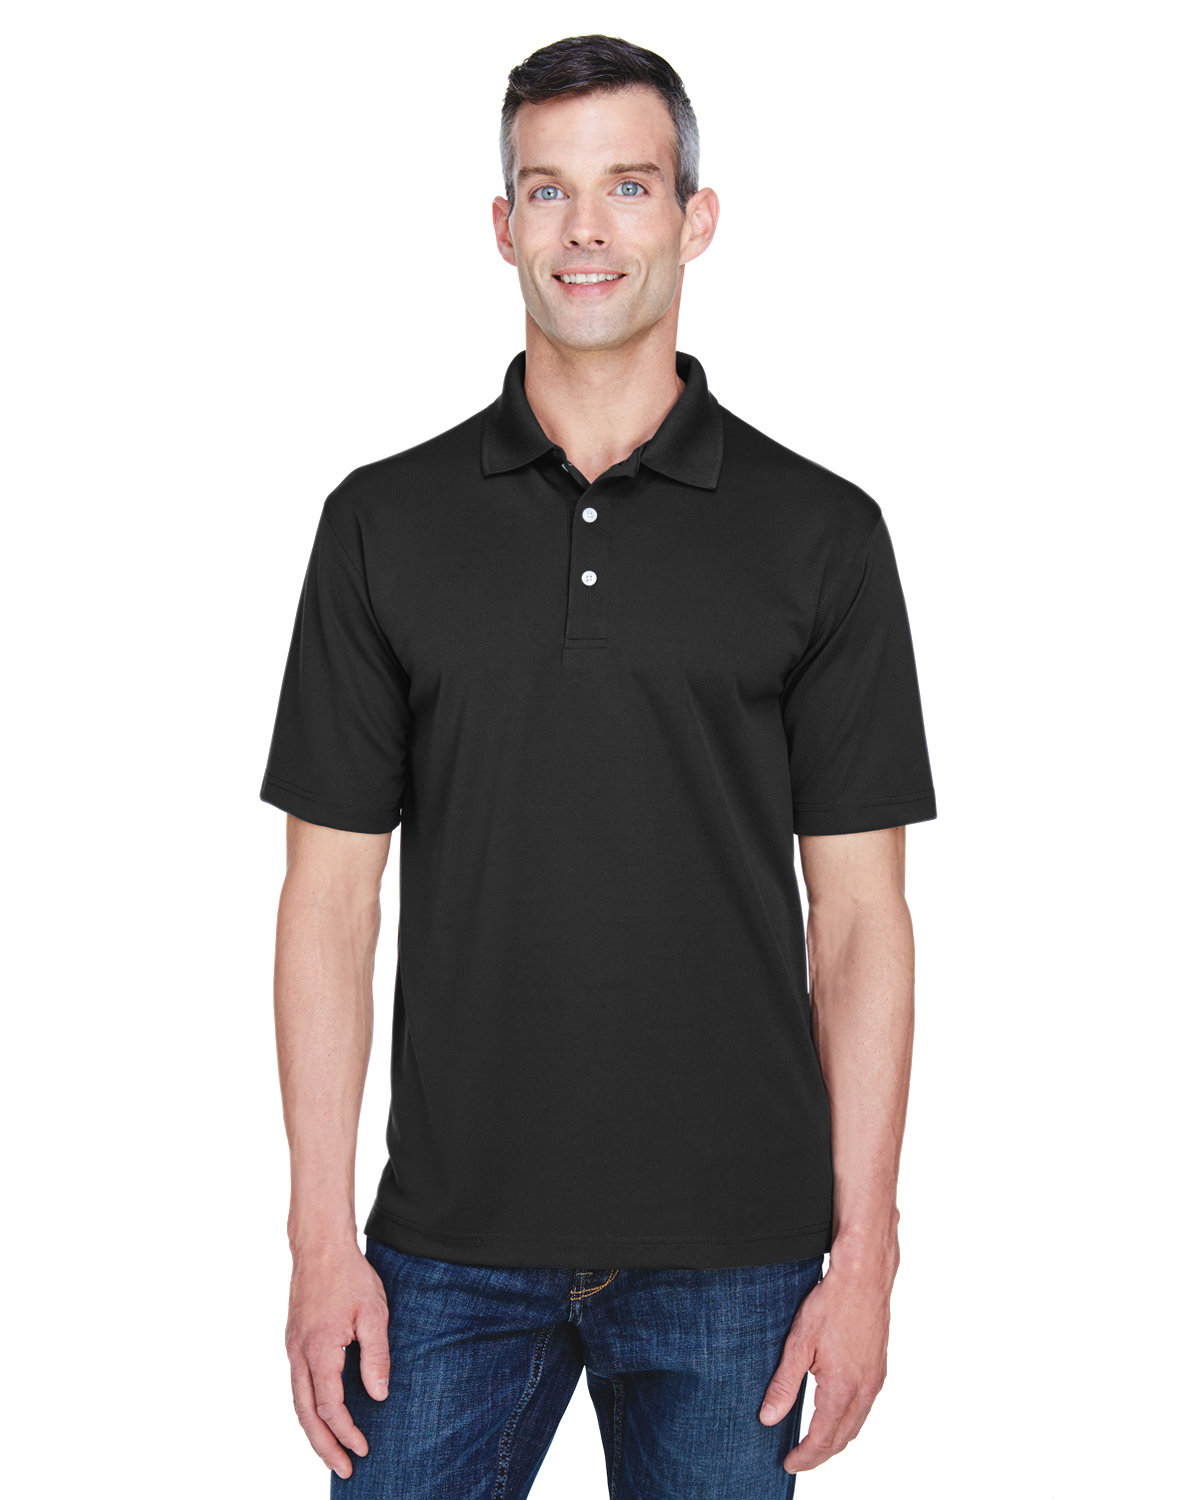 UltraClub Men's Cool & Dry Stain-Release Performance Polo BLACK